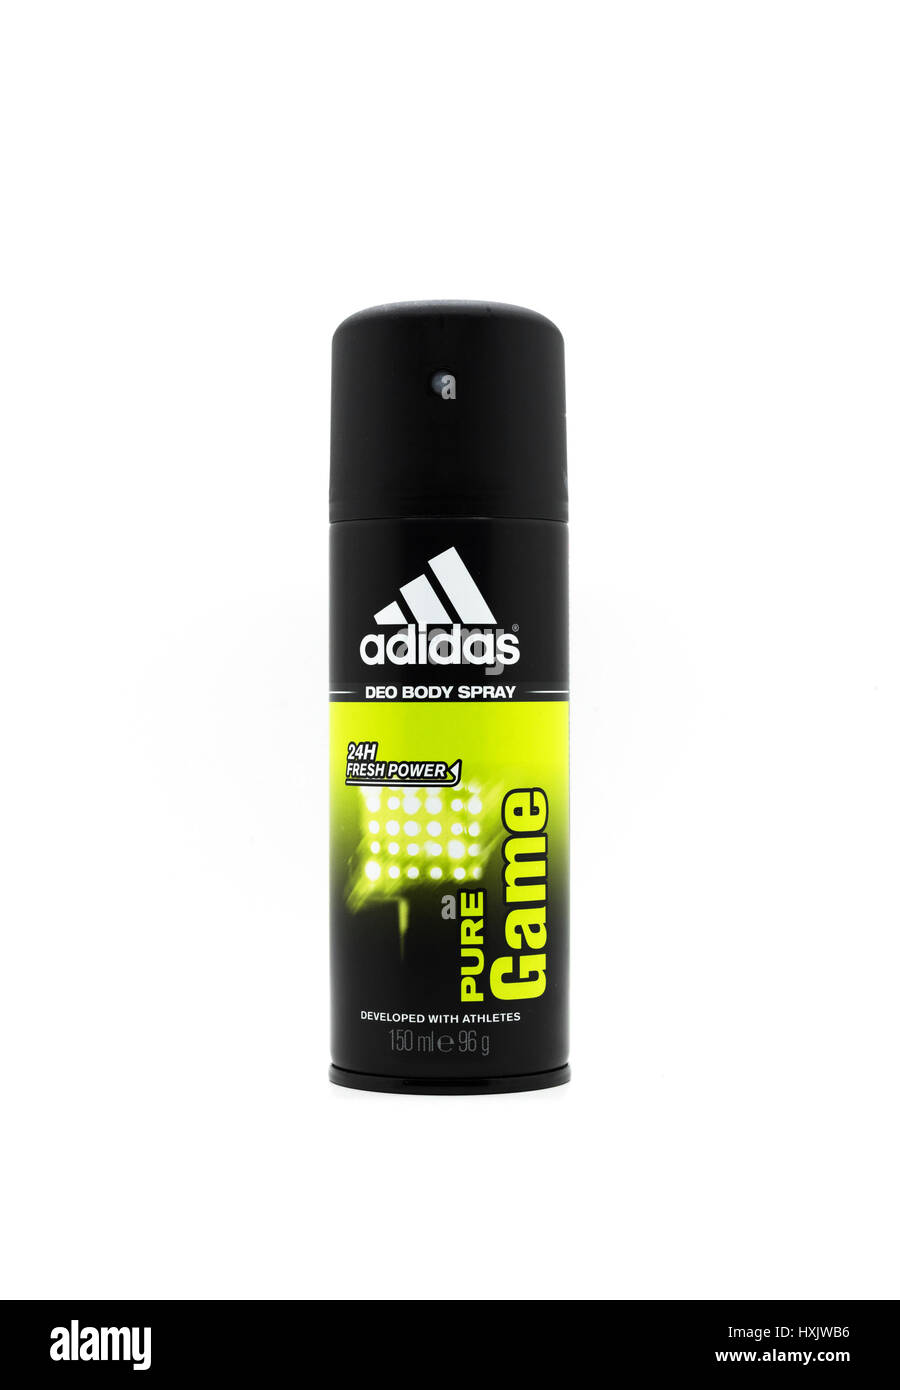 Adidas Deodorant Body Spray - Stock Image